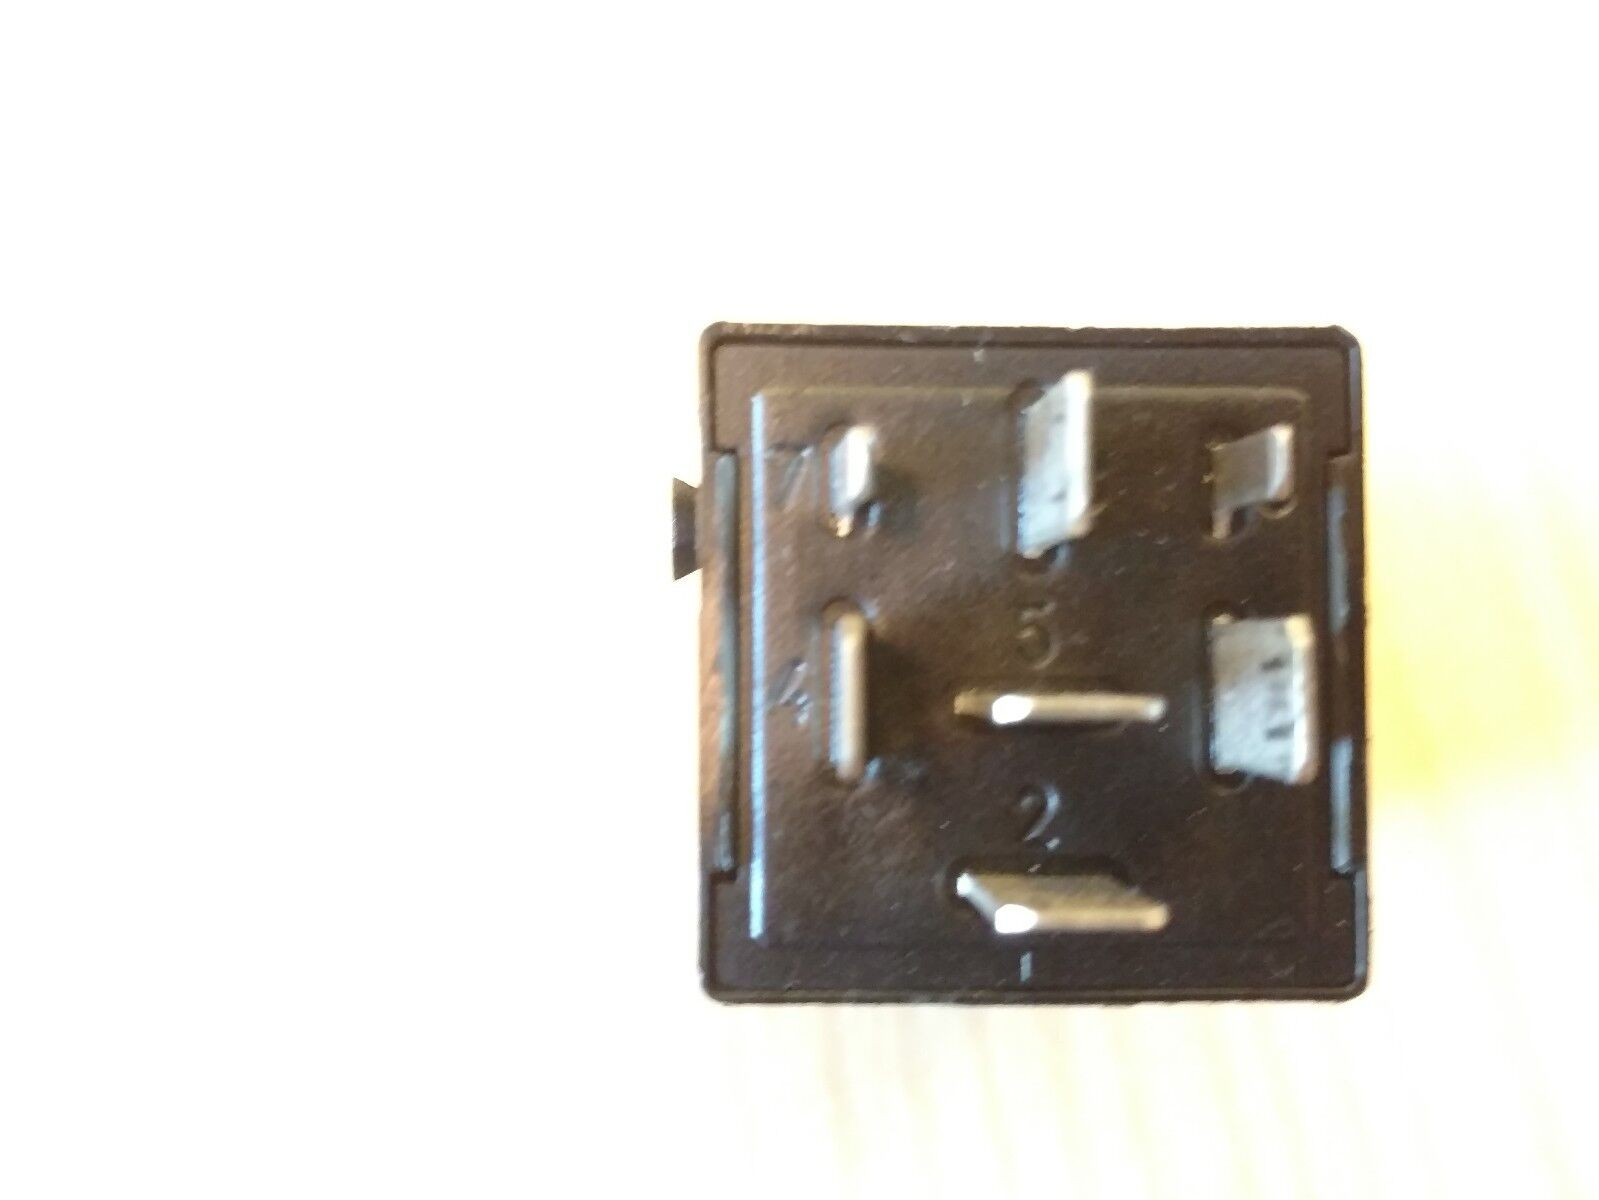 hight resolution of oem bmw z3 96 02 e36 hazard flasher relay module siemens 61361388533 1388533 for sale online ebay